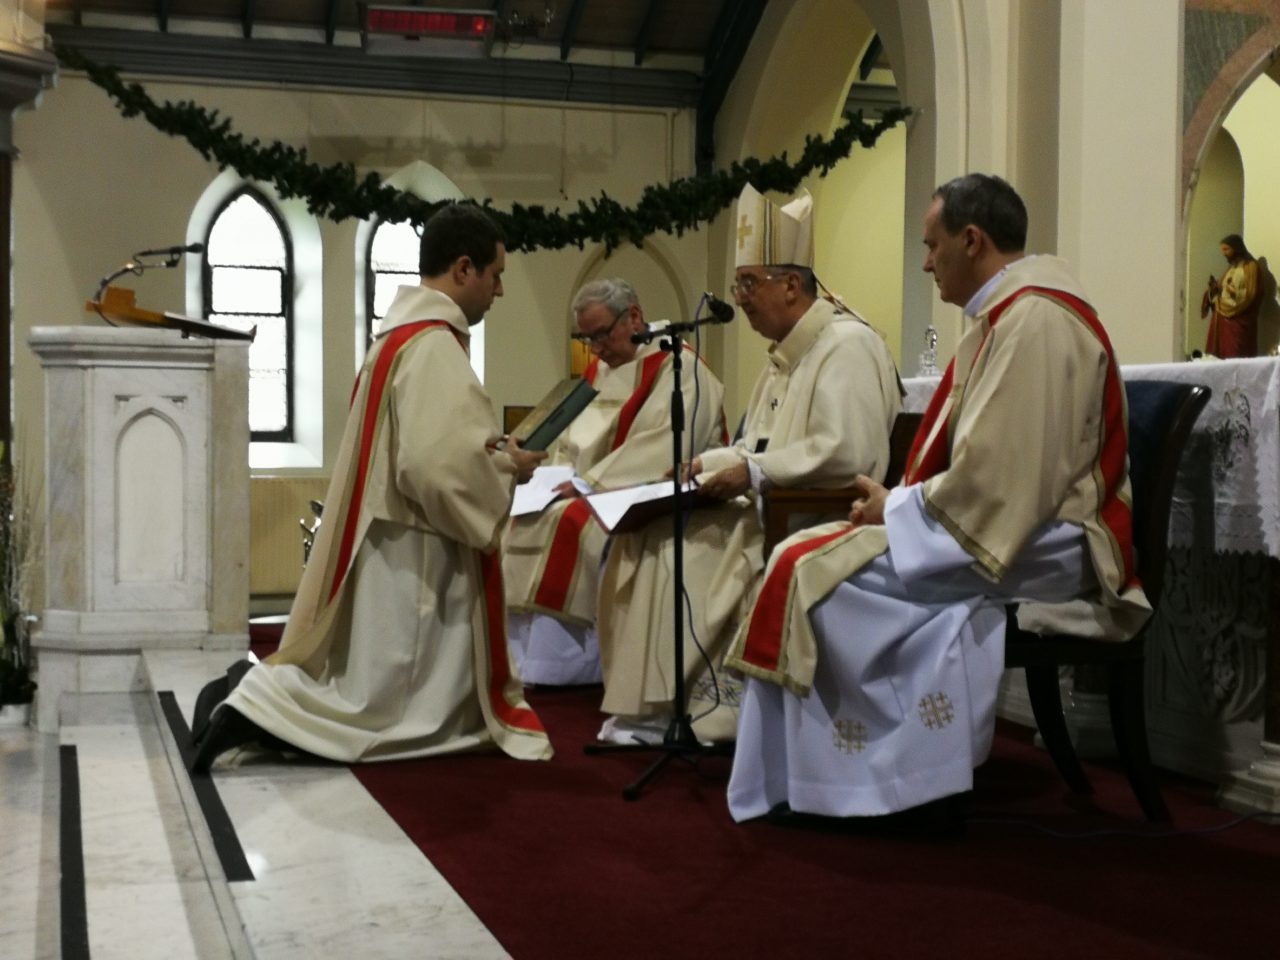 Deacon Tom is blessed by Archbishop Diarmuid Martin before he reads the Gospel